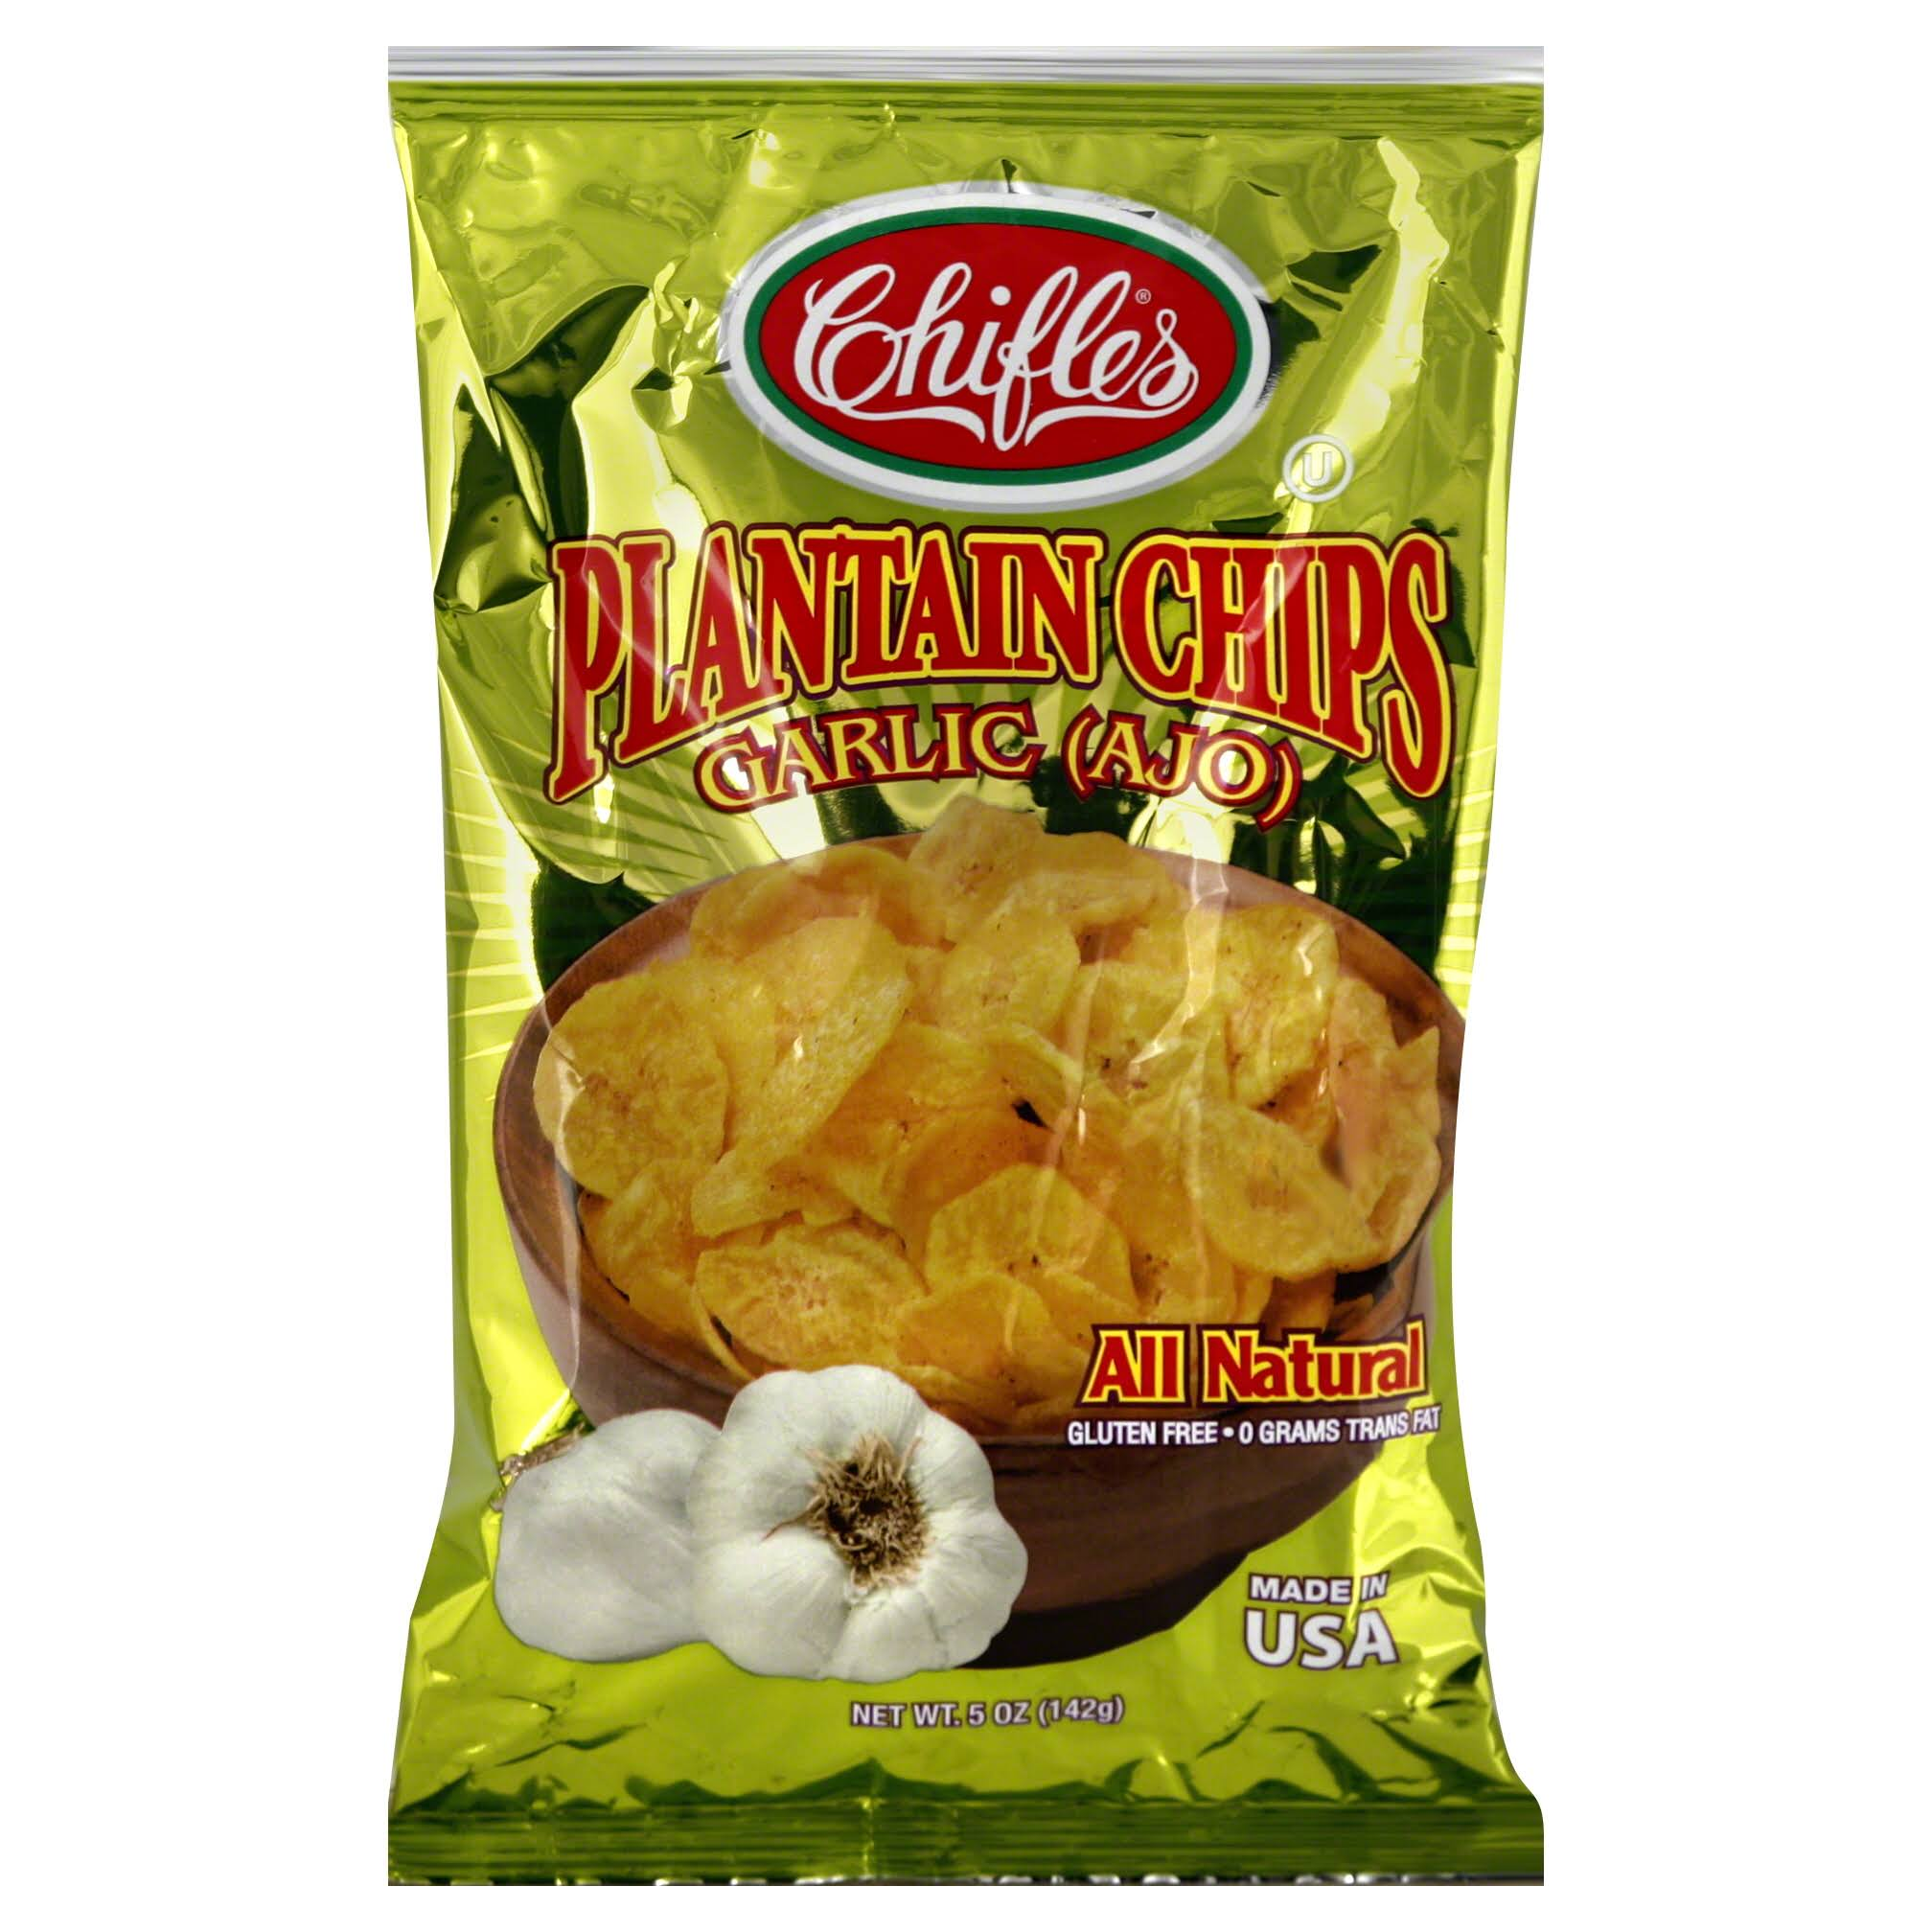 Chifles Garlic Flavor Plantain Chips - 5oz